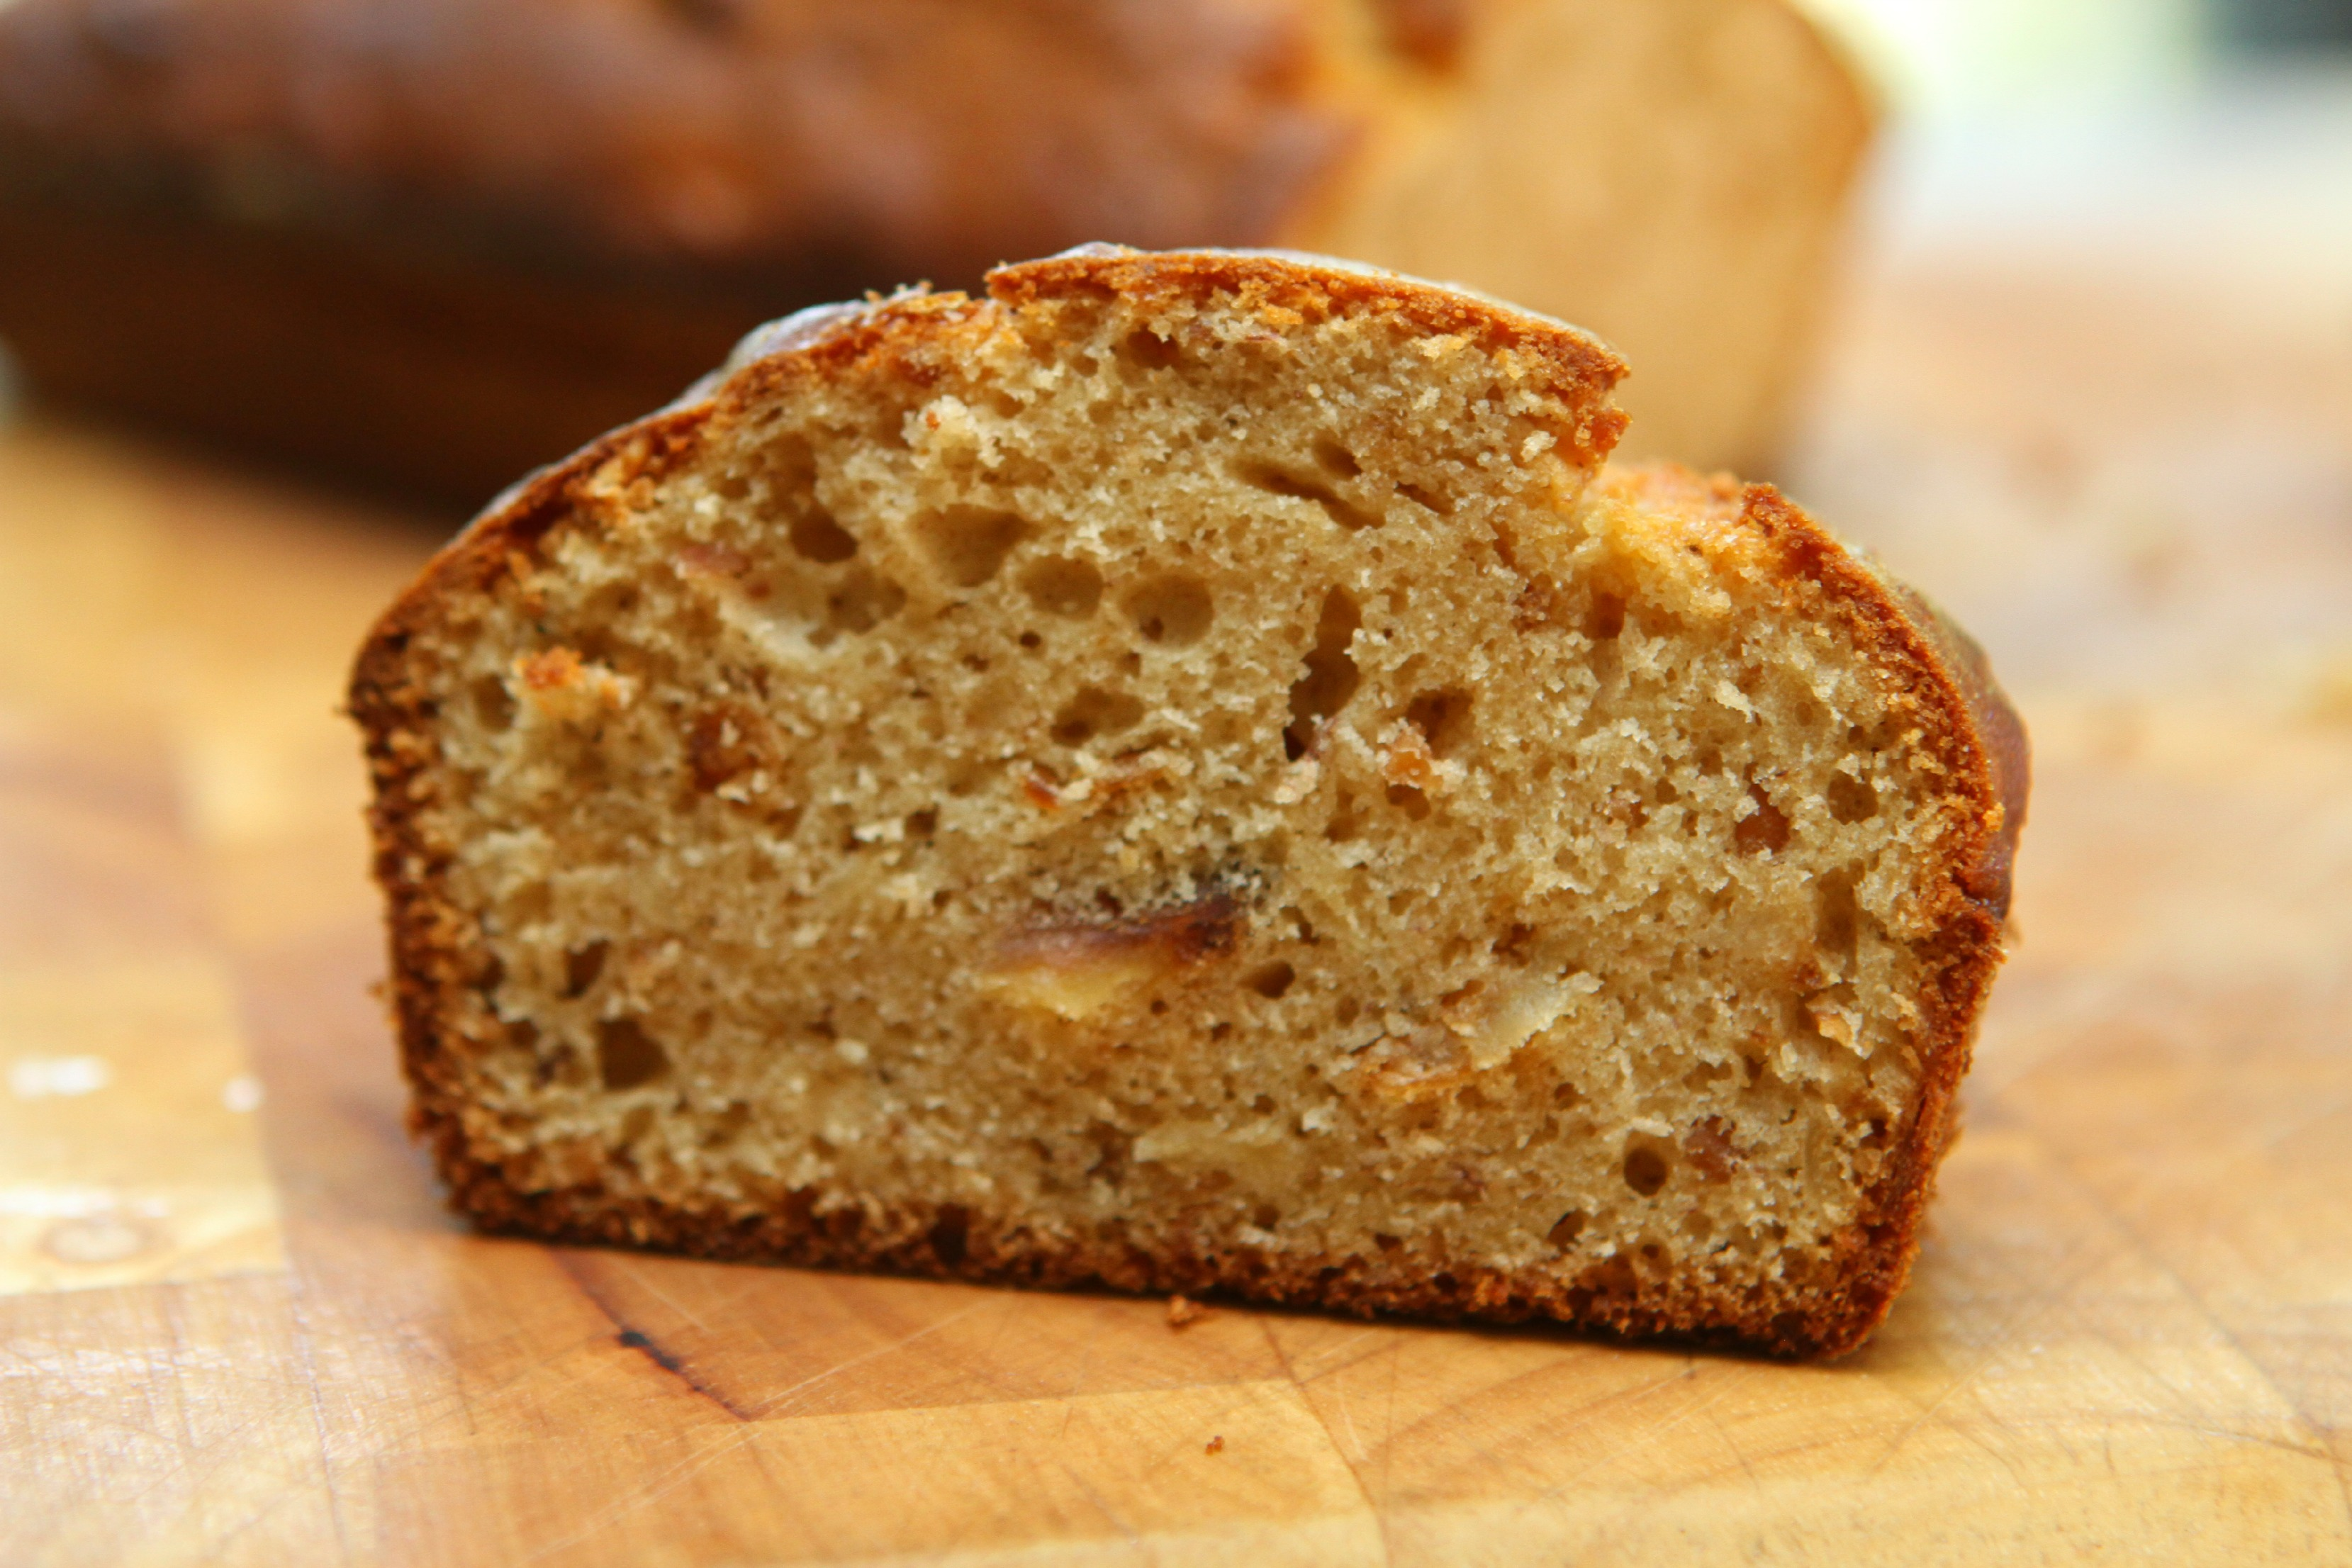 Cake Recipes Using Loaf Tin: Parsnip & Peanut Butter Loaf Cake (Dairy Free)